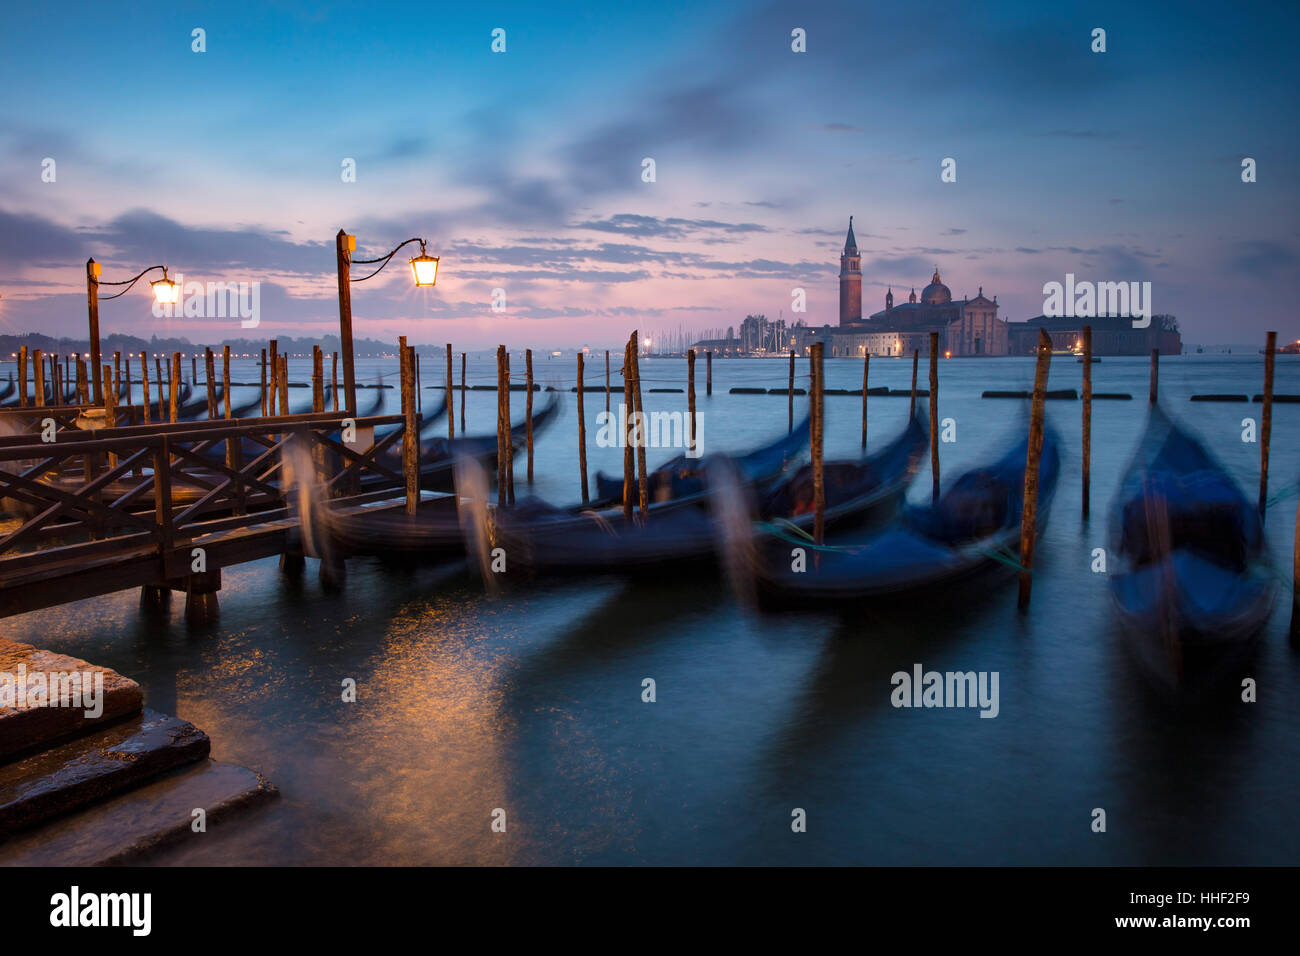 Pre-dawn light over gondolas and San Giorgio Maggiore, Venice, Veneto, Italy Stock Photo